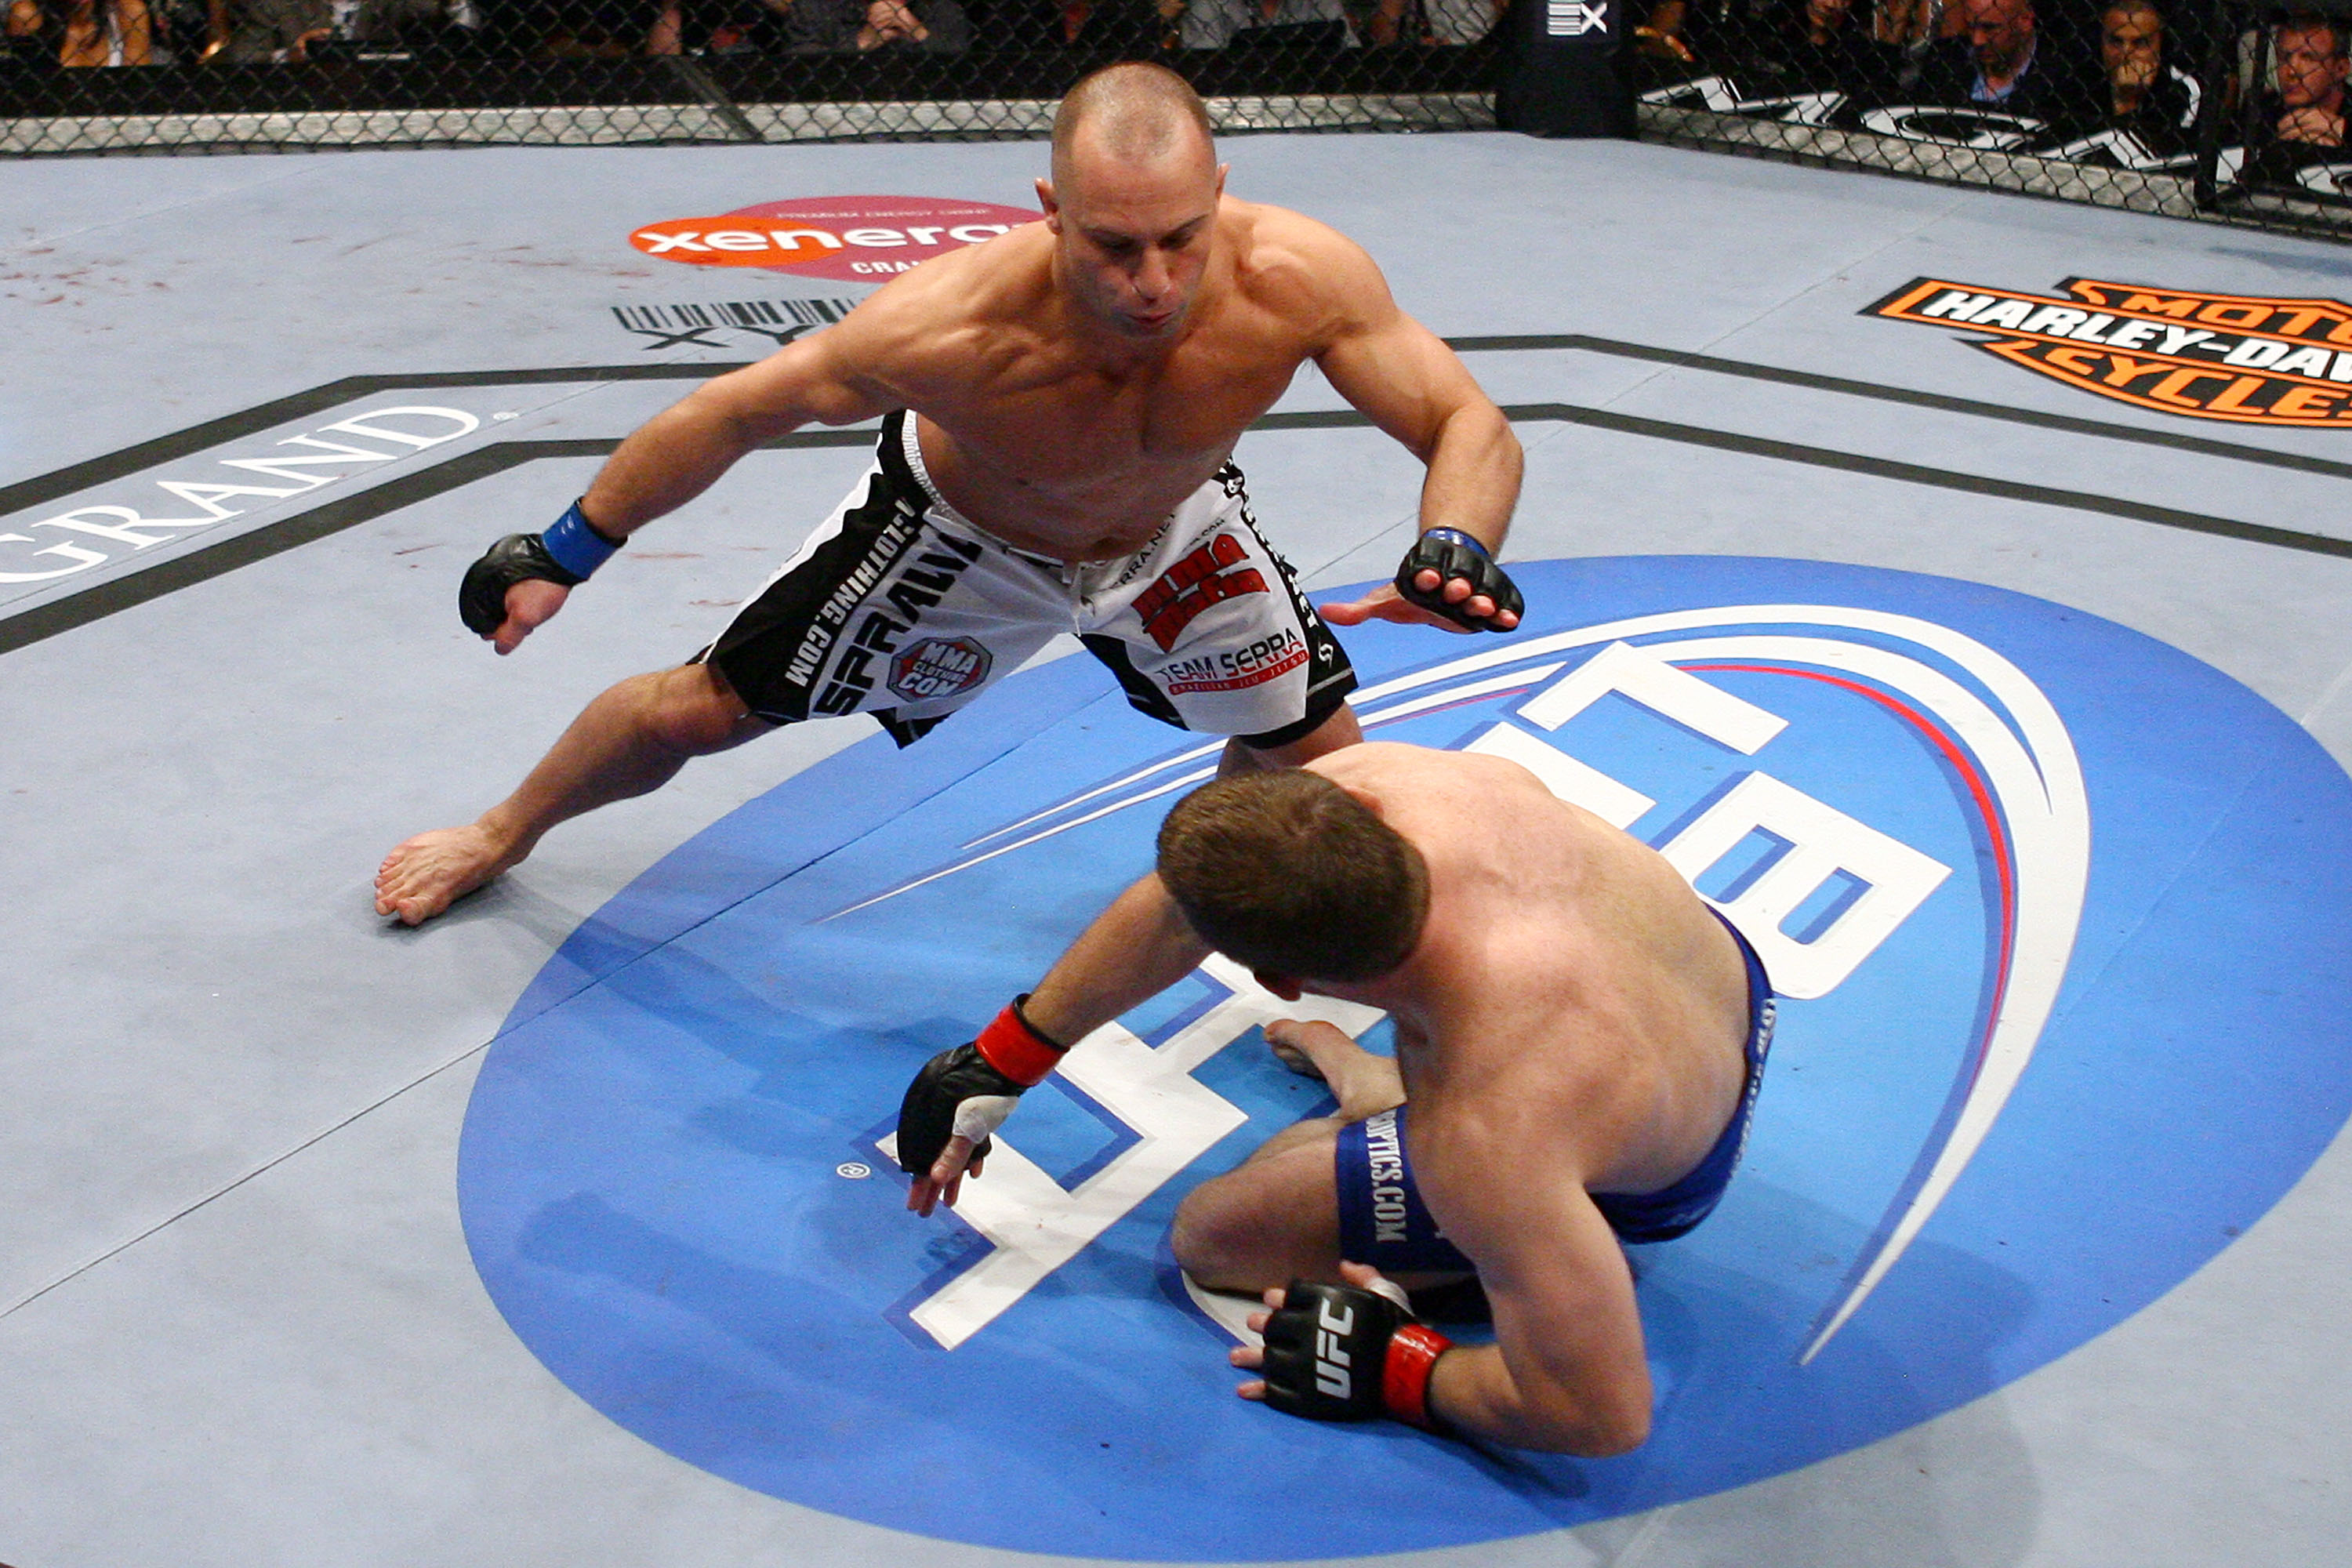 LAS VEGAS - MAY 23: Matt Serra (L) battles Matt Hughes (R) during their Welterweight bout at UFC 98: Evans vs Machida at the MGM Grand Garden Arena on May 23, 2009 in Las Vegas, Nevada. (Photo by Al Bello/Zuffa, LLC via Getty Images)